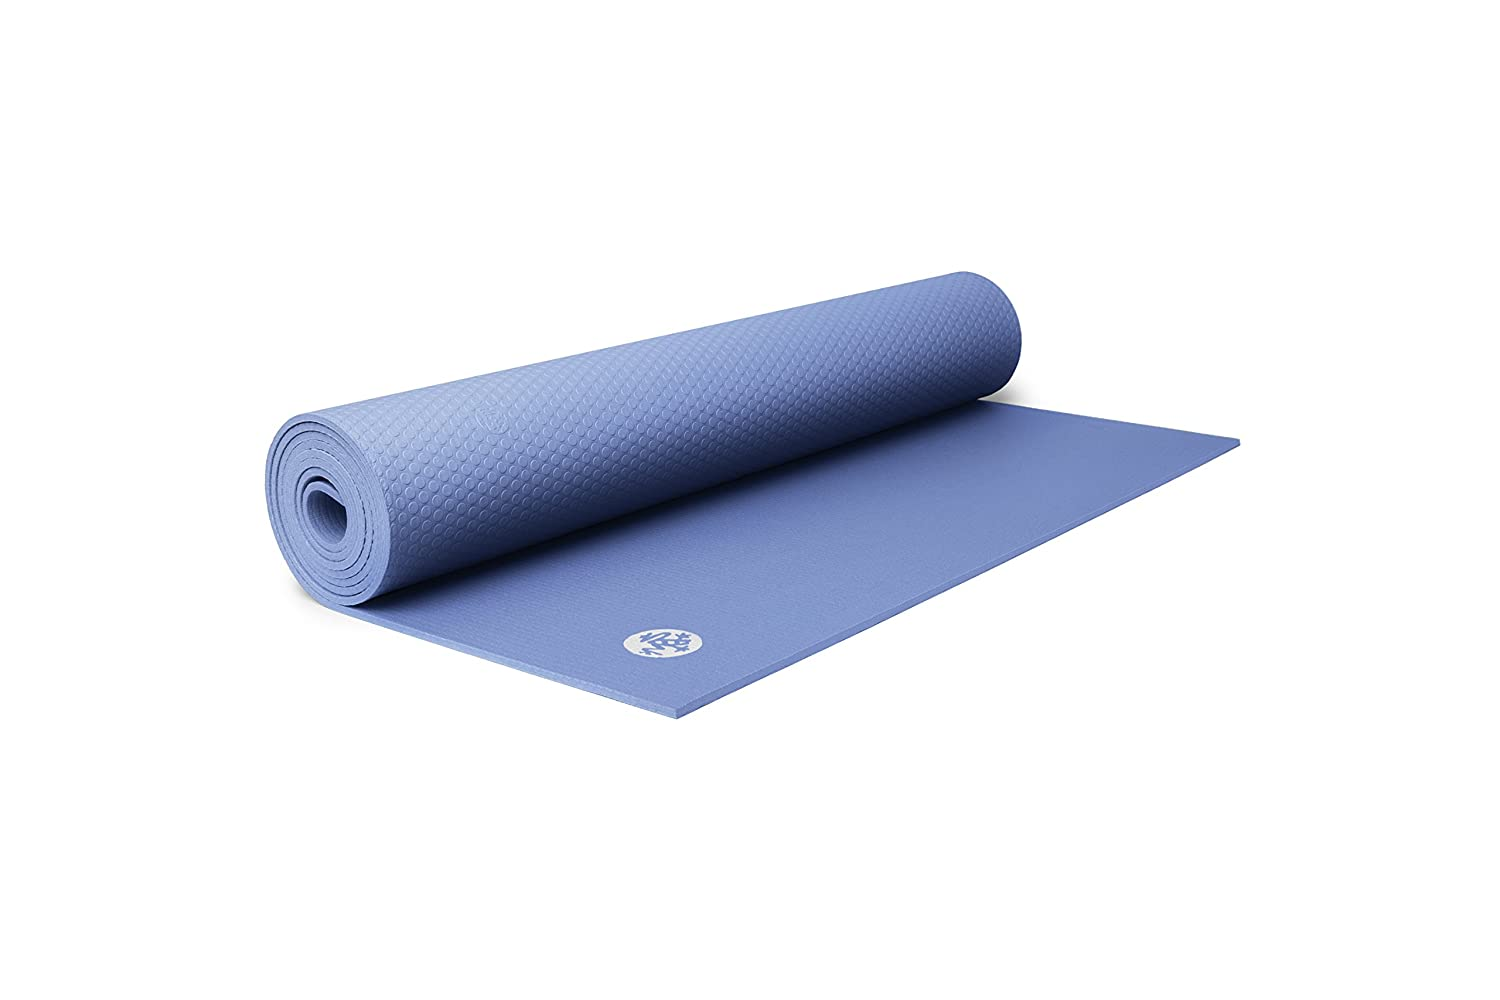 Amazon.com : Manduka PROlite Yoga Mat : Sports & Outdoors